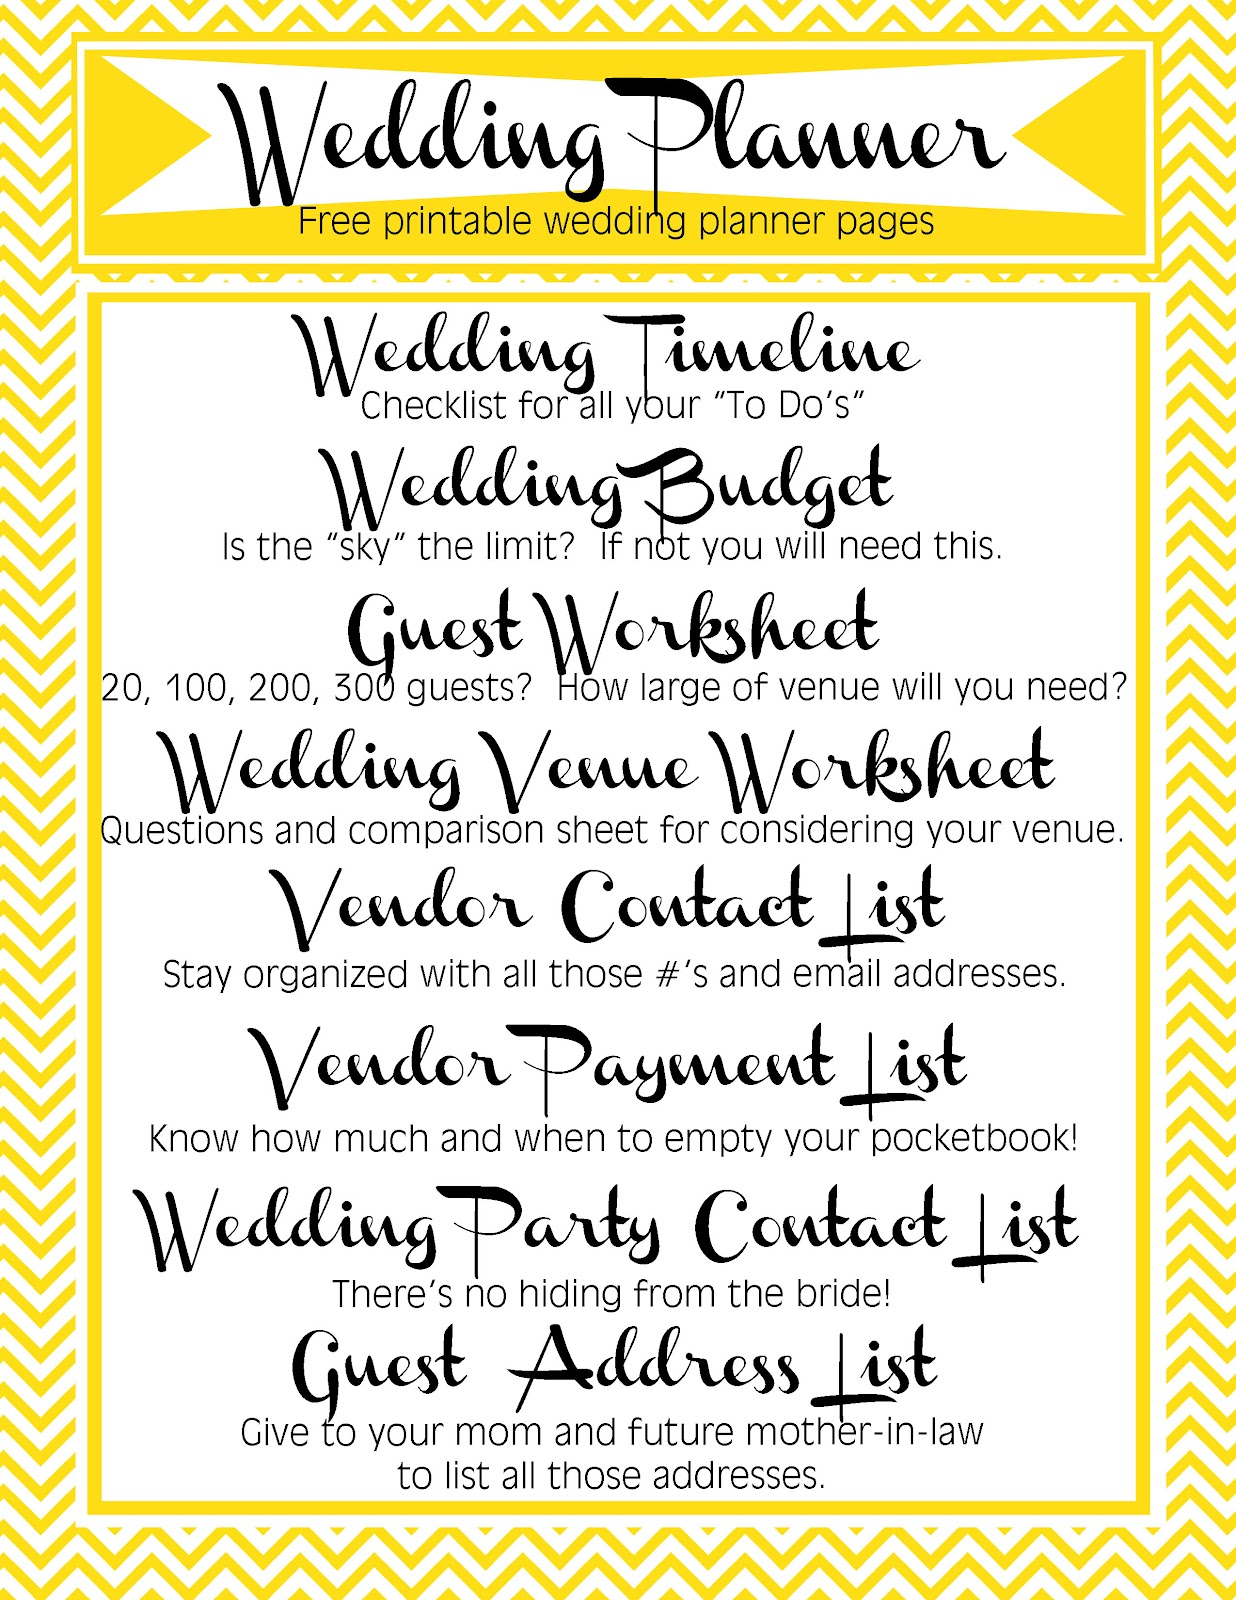 Free printable wedding reception templates gloss celebrate celebrate celebrate gt printable wedding planner pages solutioingenieria Image collections